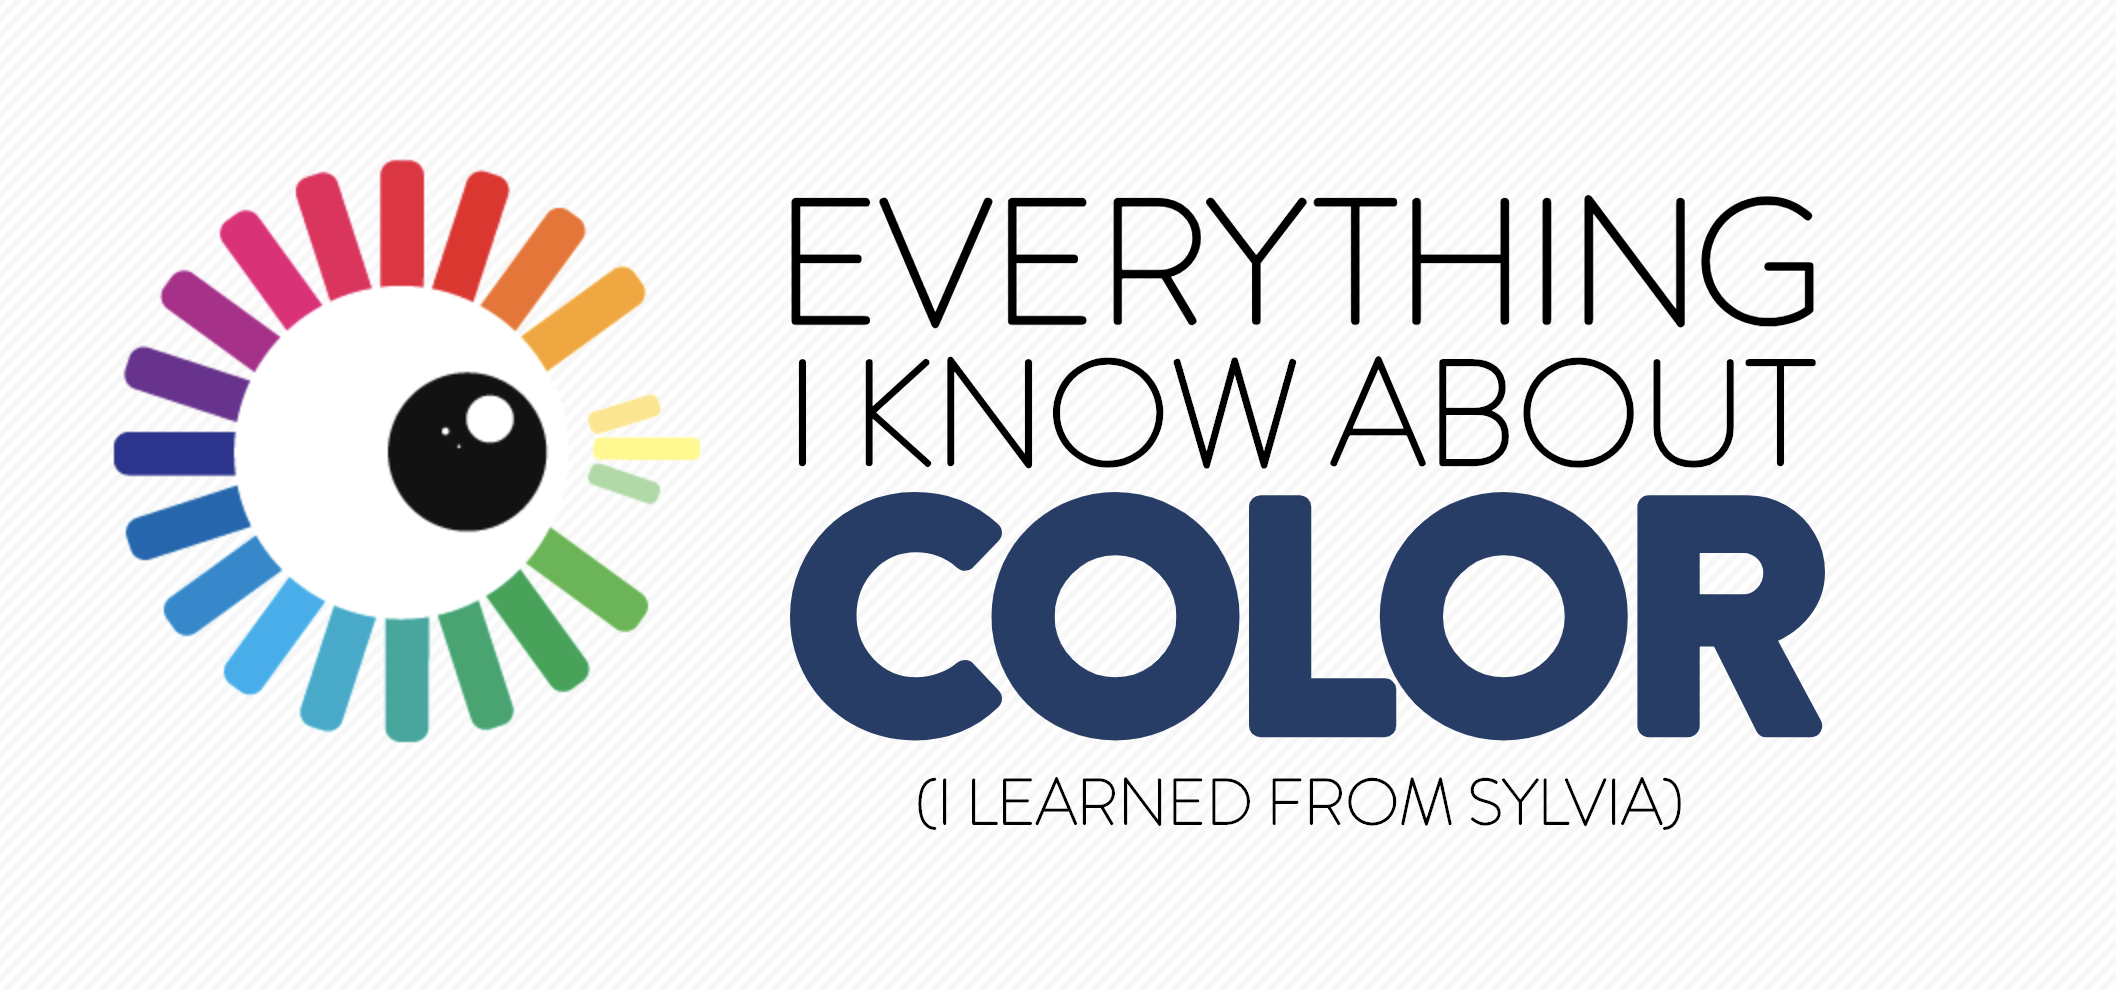 Everything I Know About Color